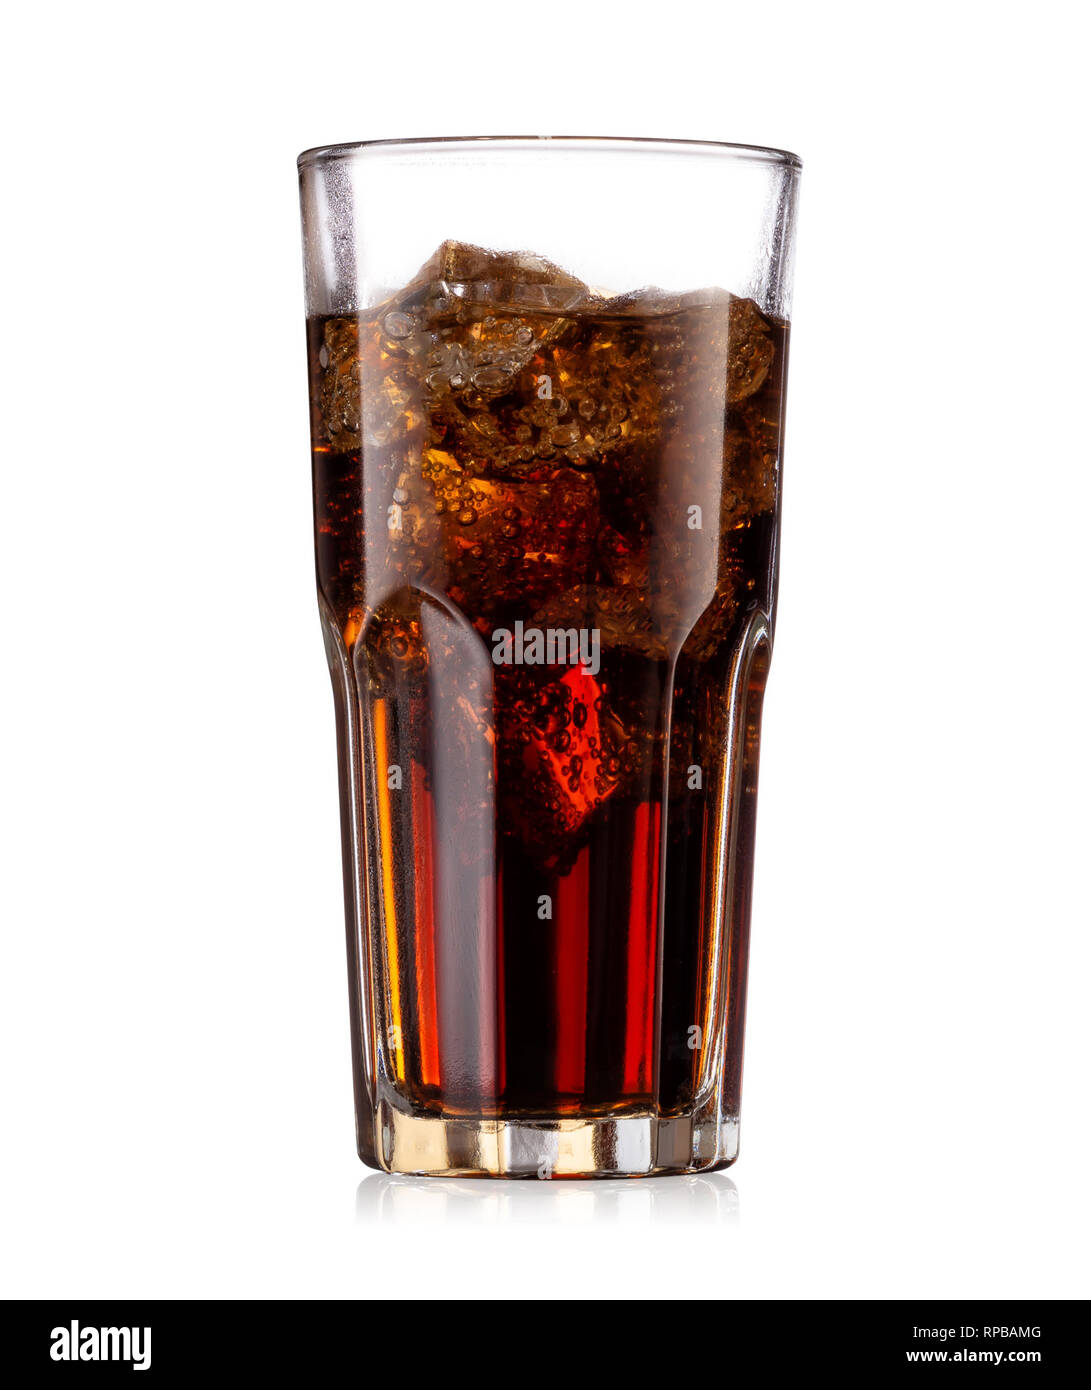 Brown carbonated drink in a glass with ice - Stock Image